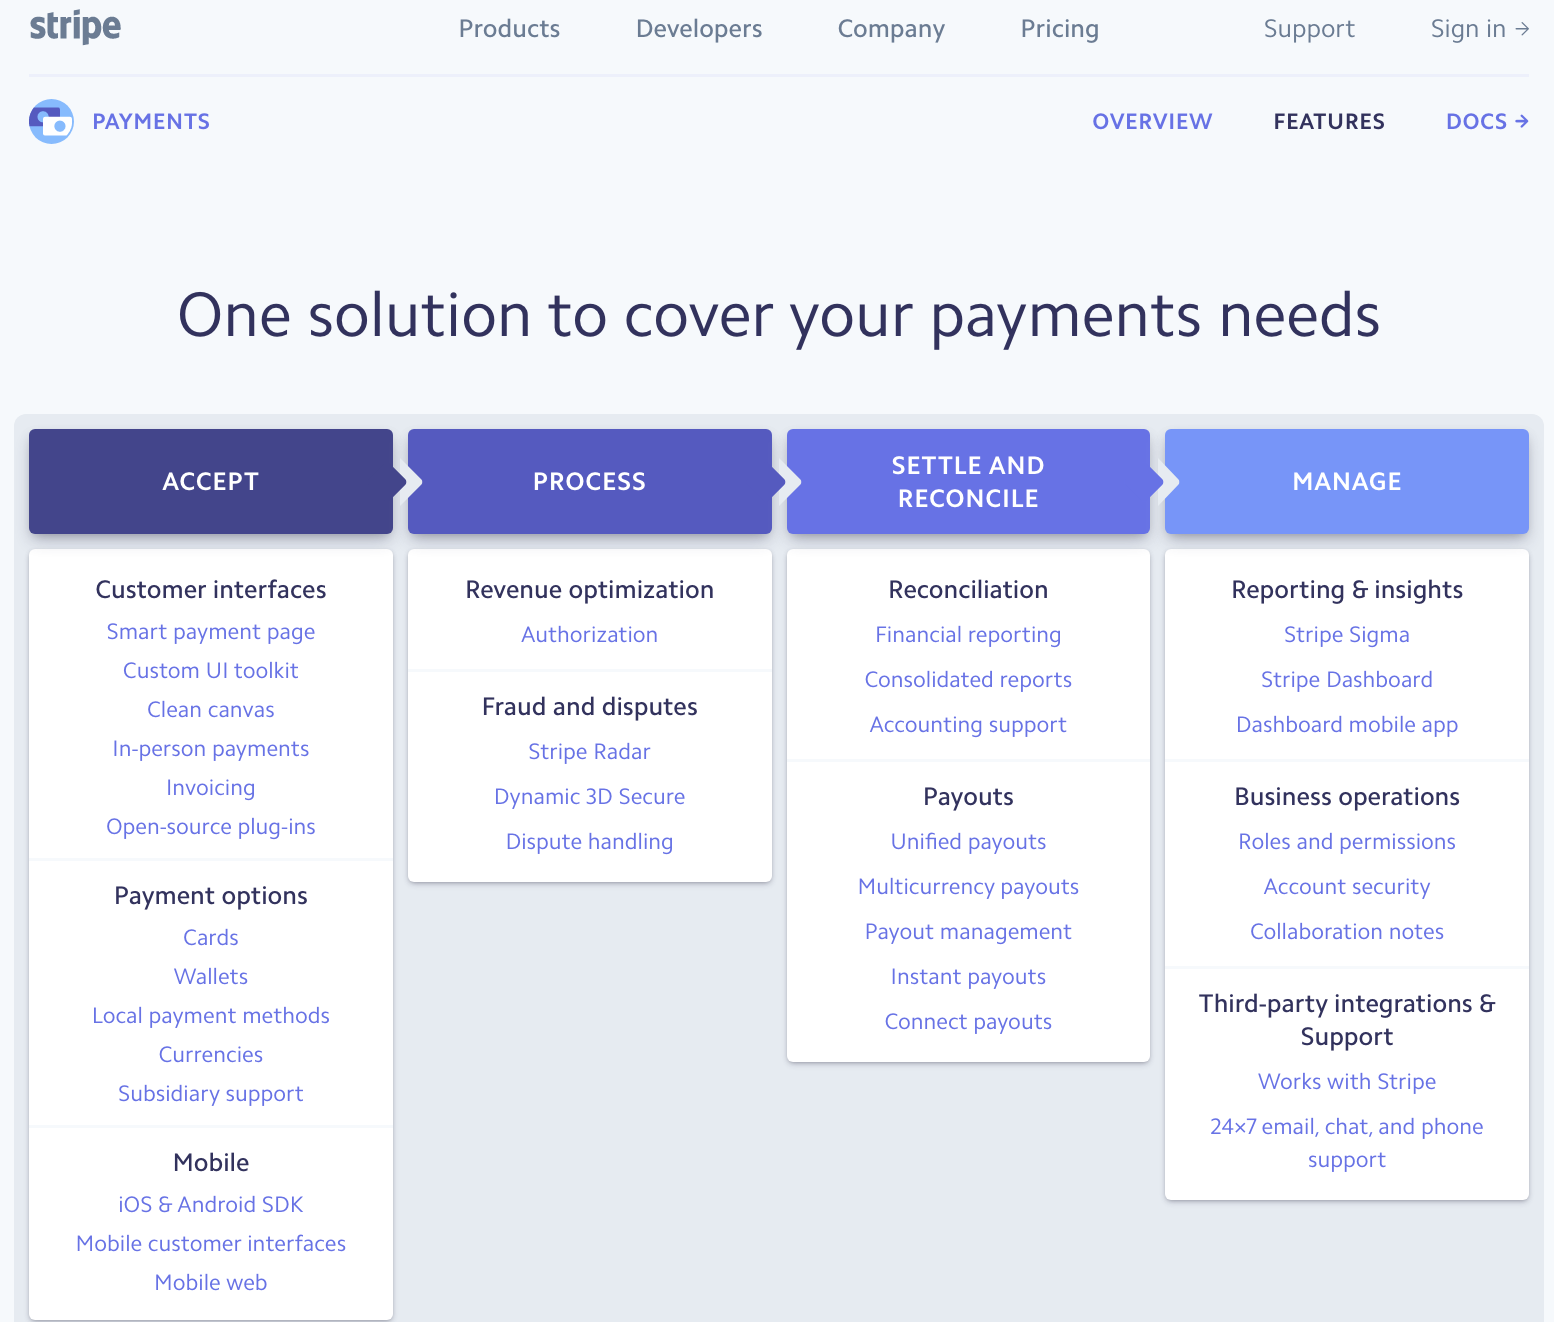 stripe payment services